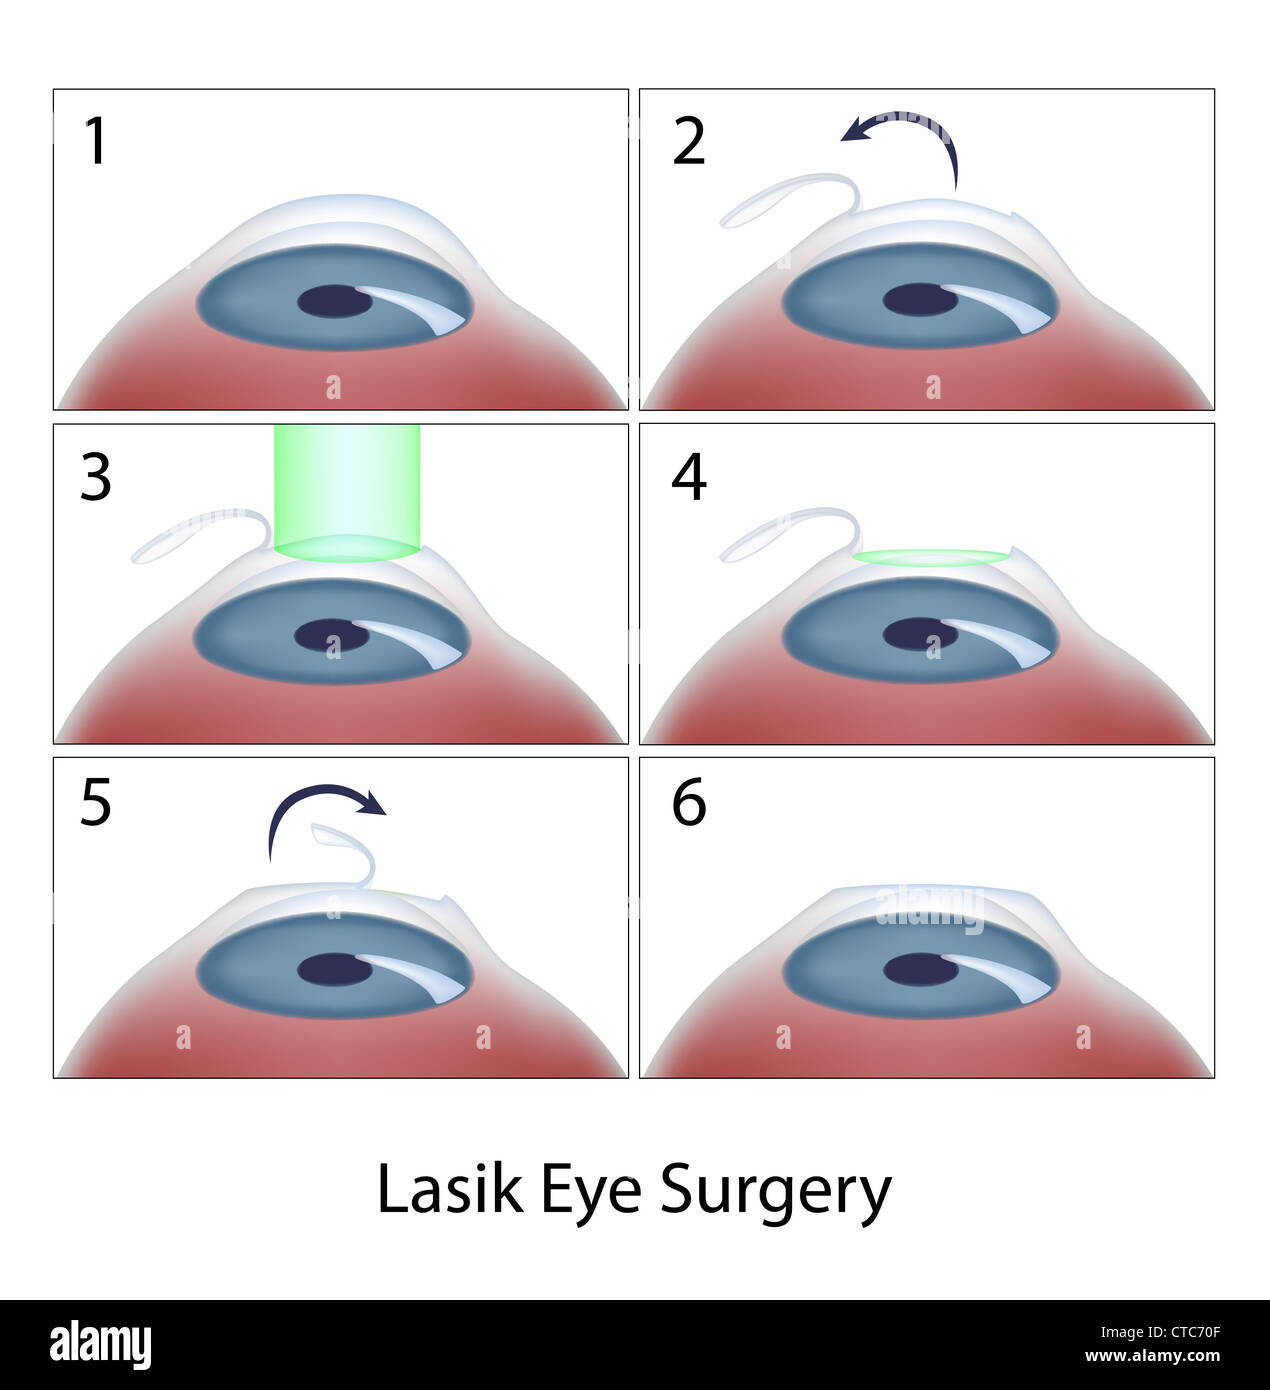 an introduction to the lasik laser eye surgery Lasik (laser in-situ- keratomileusis) is a technique that reshapes the surface of the cornea with an excimer laser, thus correcting vision problems lasik is outpatient surgery performed in dr singer's office lasting approximately five to ten minutes.